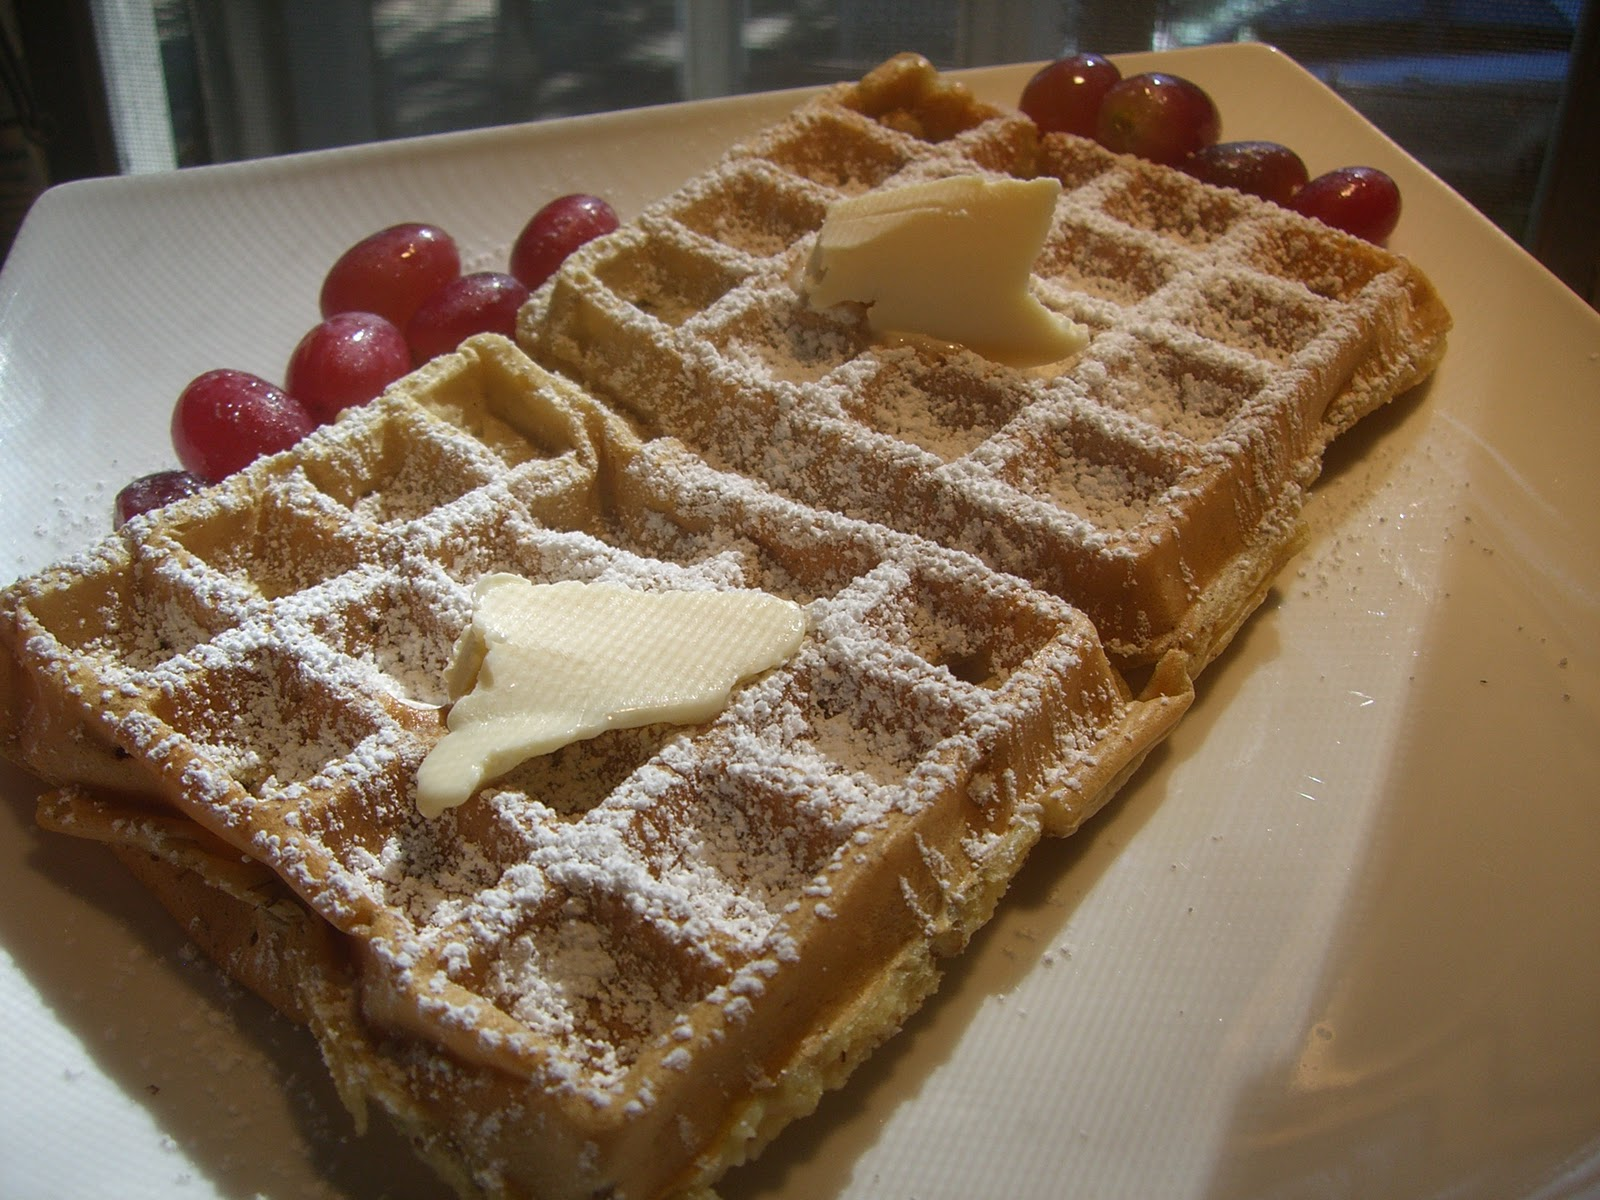 ... Trial and Error Approach: Banana Nut Waffles - Veganomicon - p. 75-76